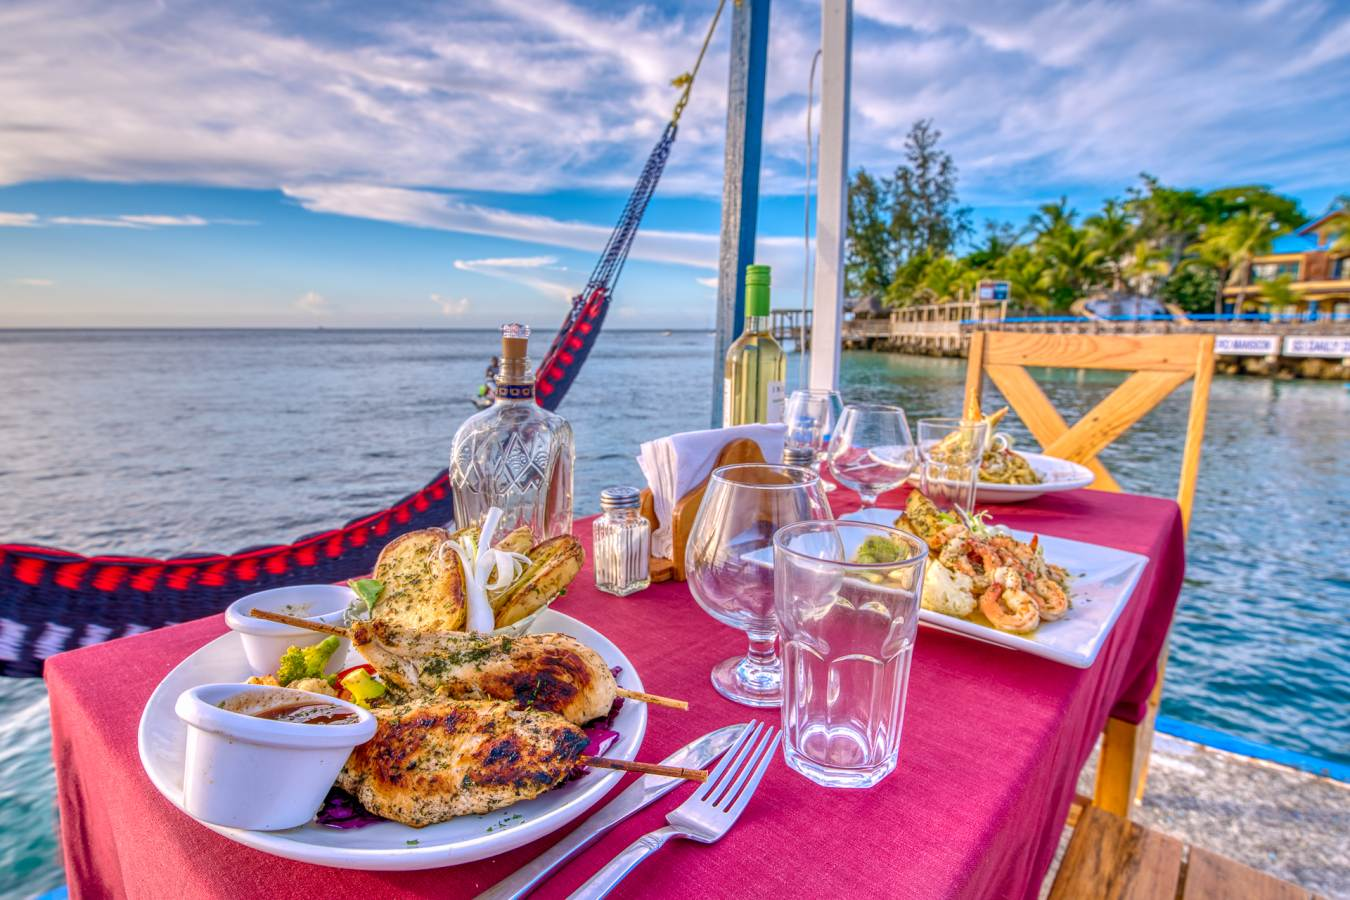 Dine on our Pier with food from THE SUNSET GRILL…